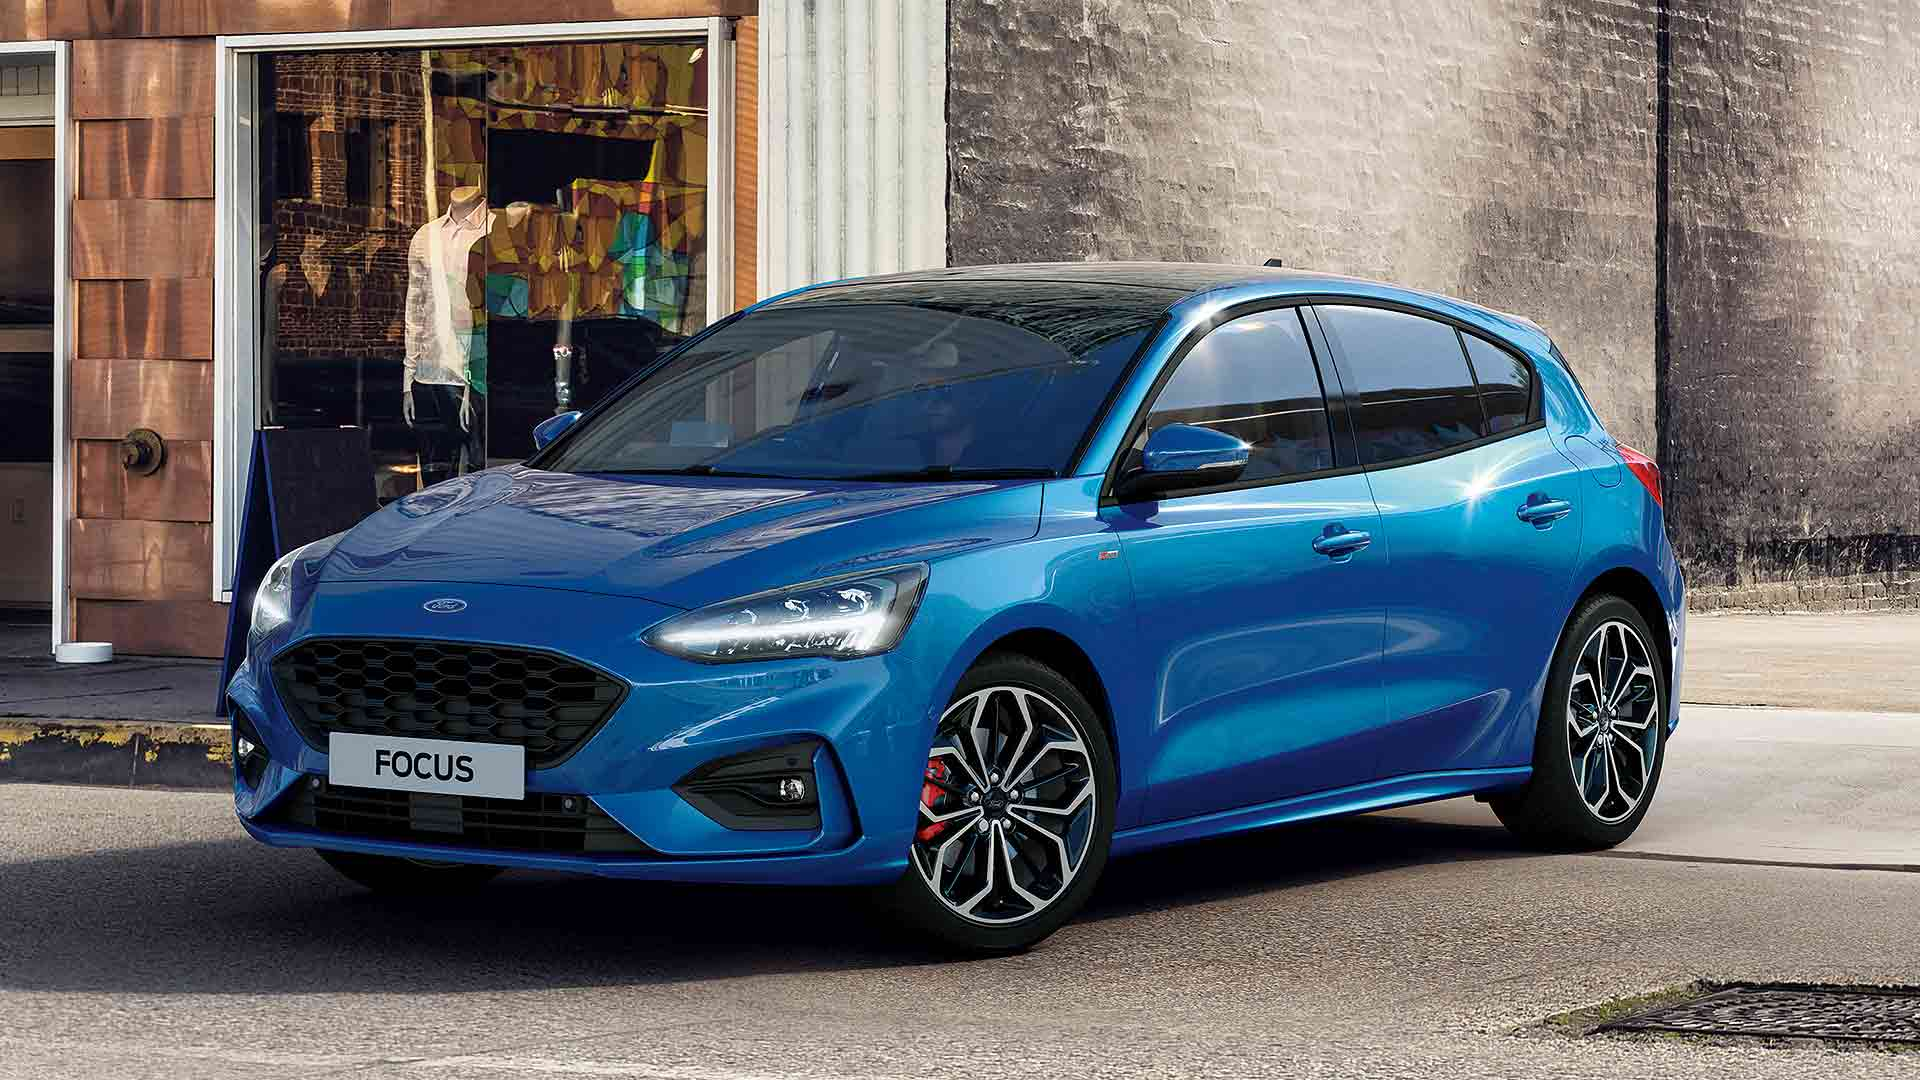 2020 Ford Focus Ecoboost Hybrid in blue pulling out of a car park